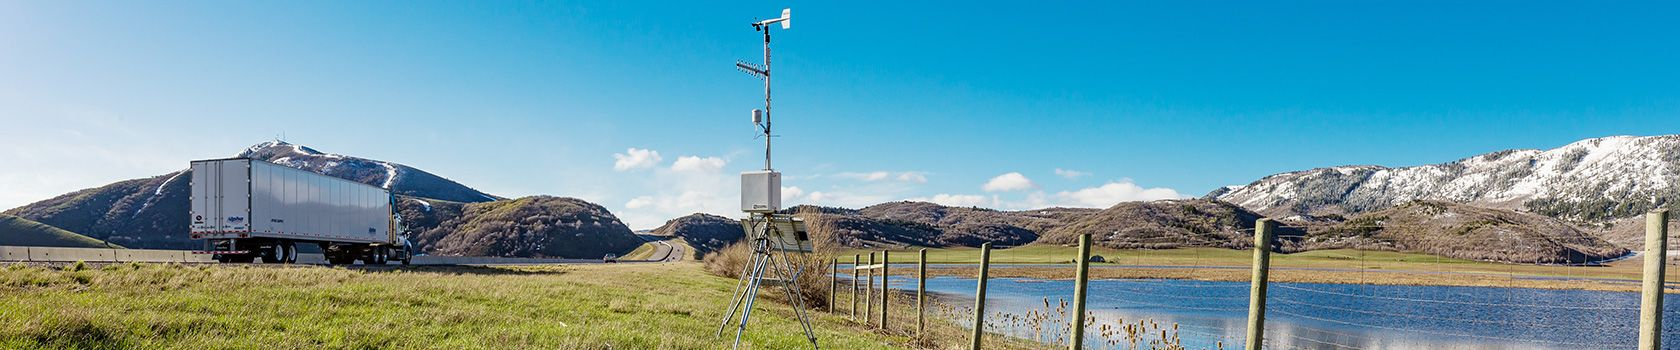 Road Weather (RWIS) Road-weather information systems and weather stations